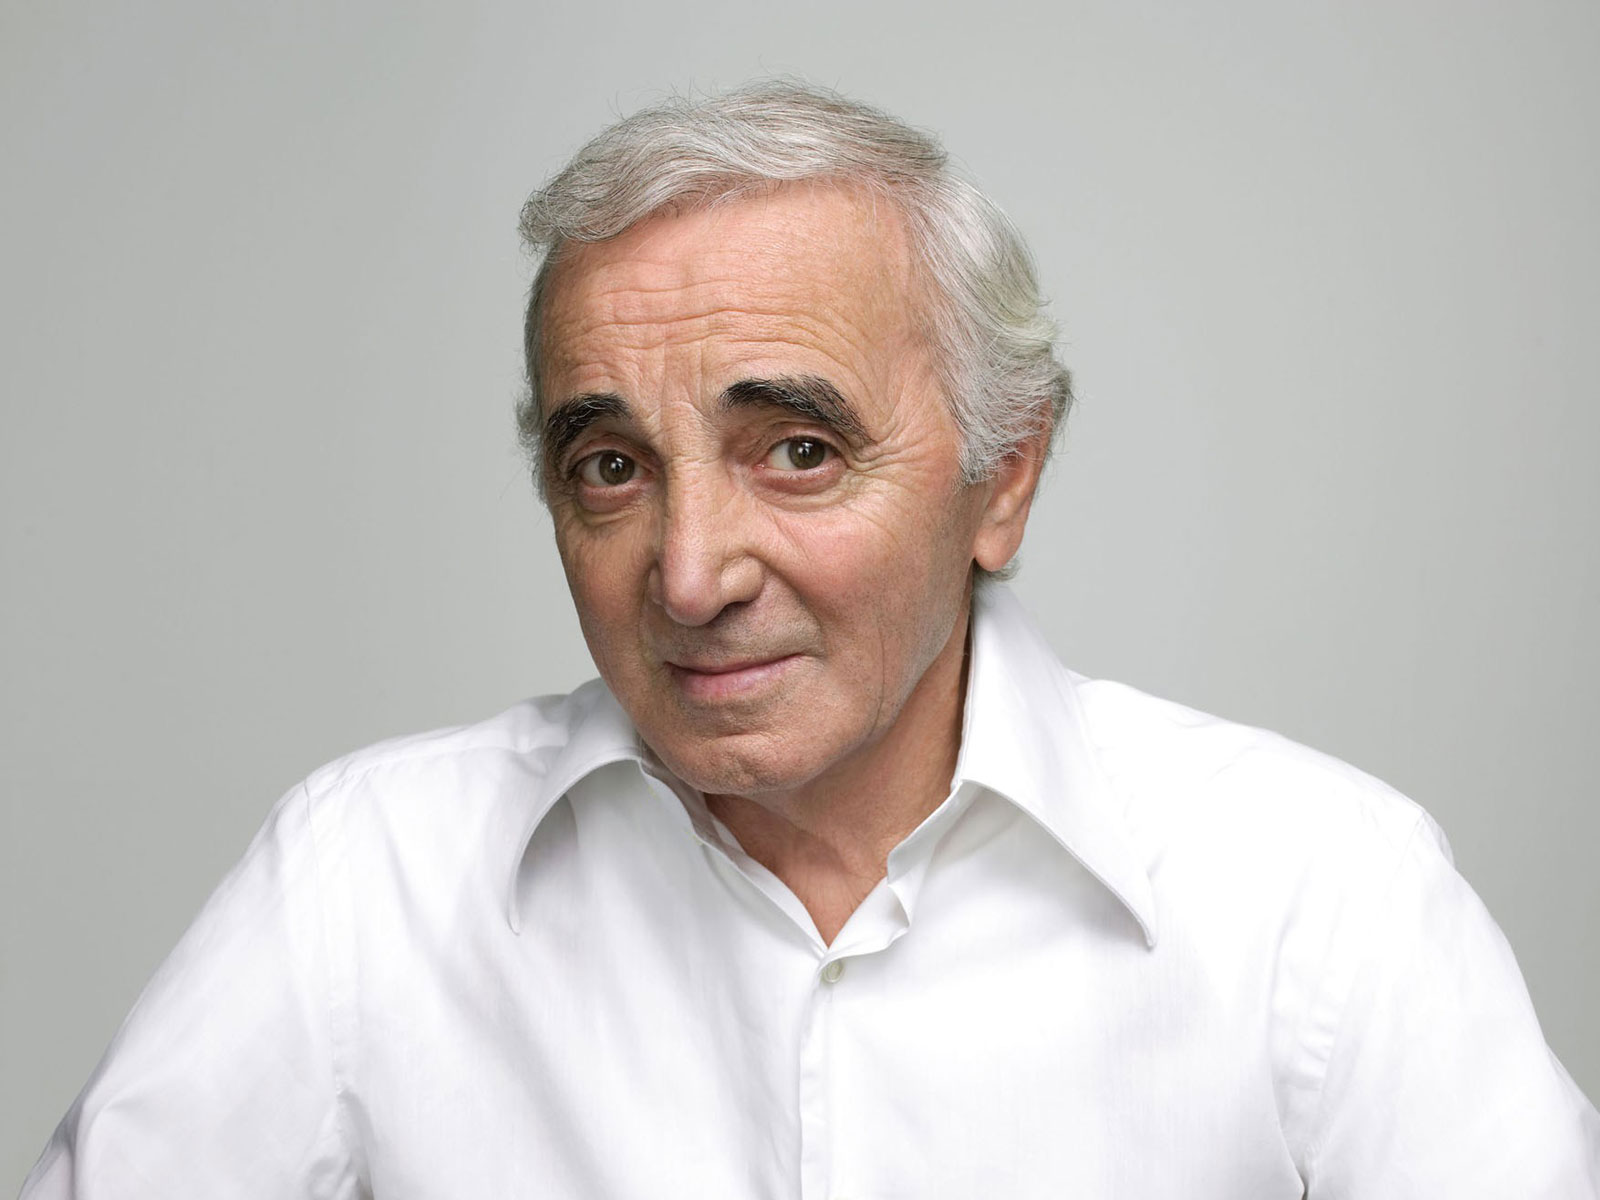 Charles Aznavour Net Worth